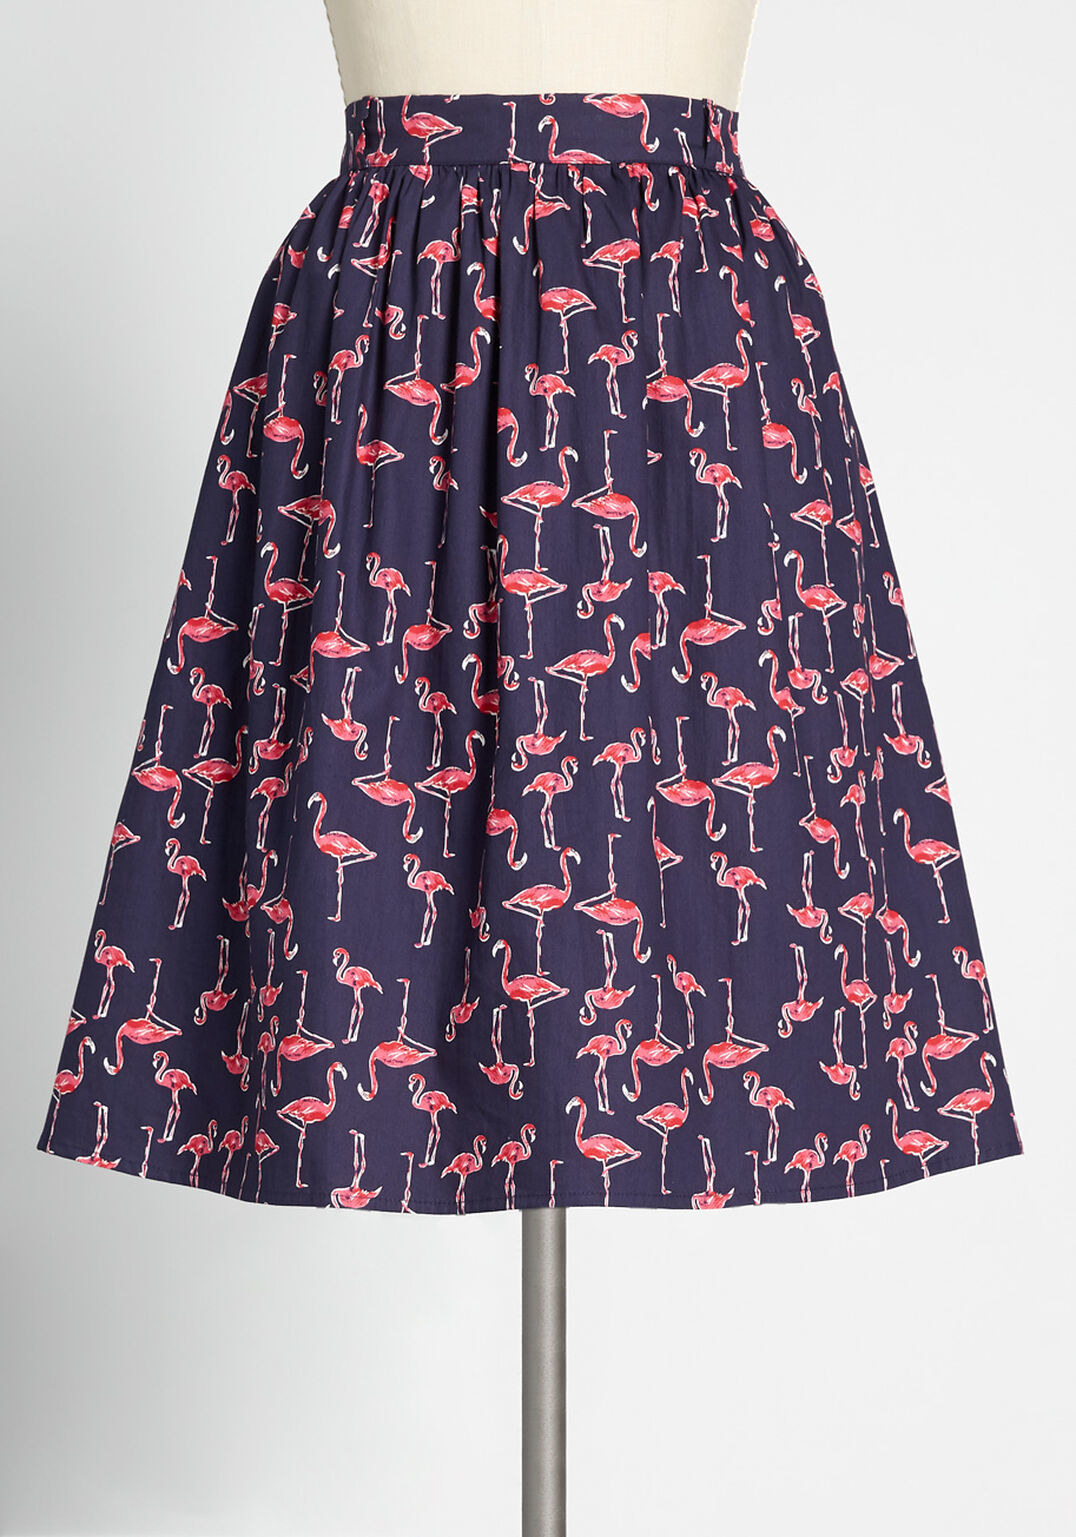 a navy blue skirt with an all-over flamingo patter